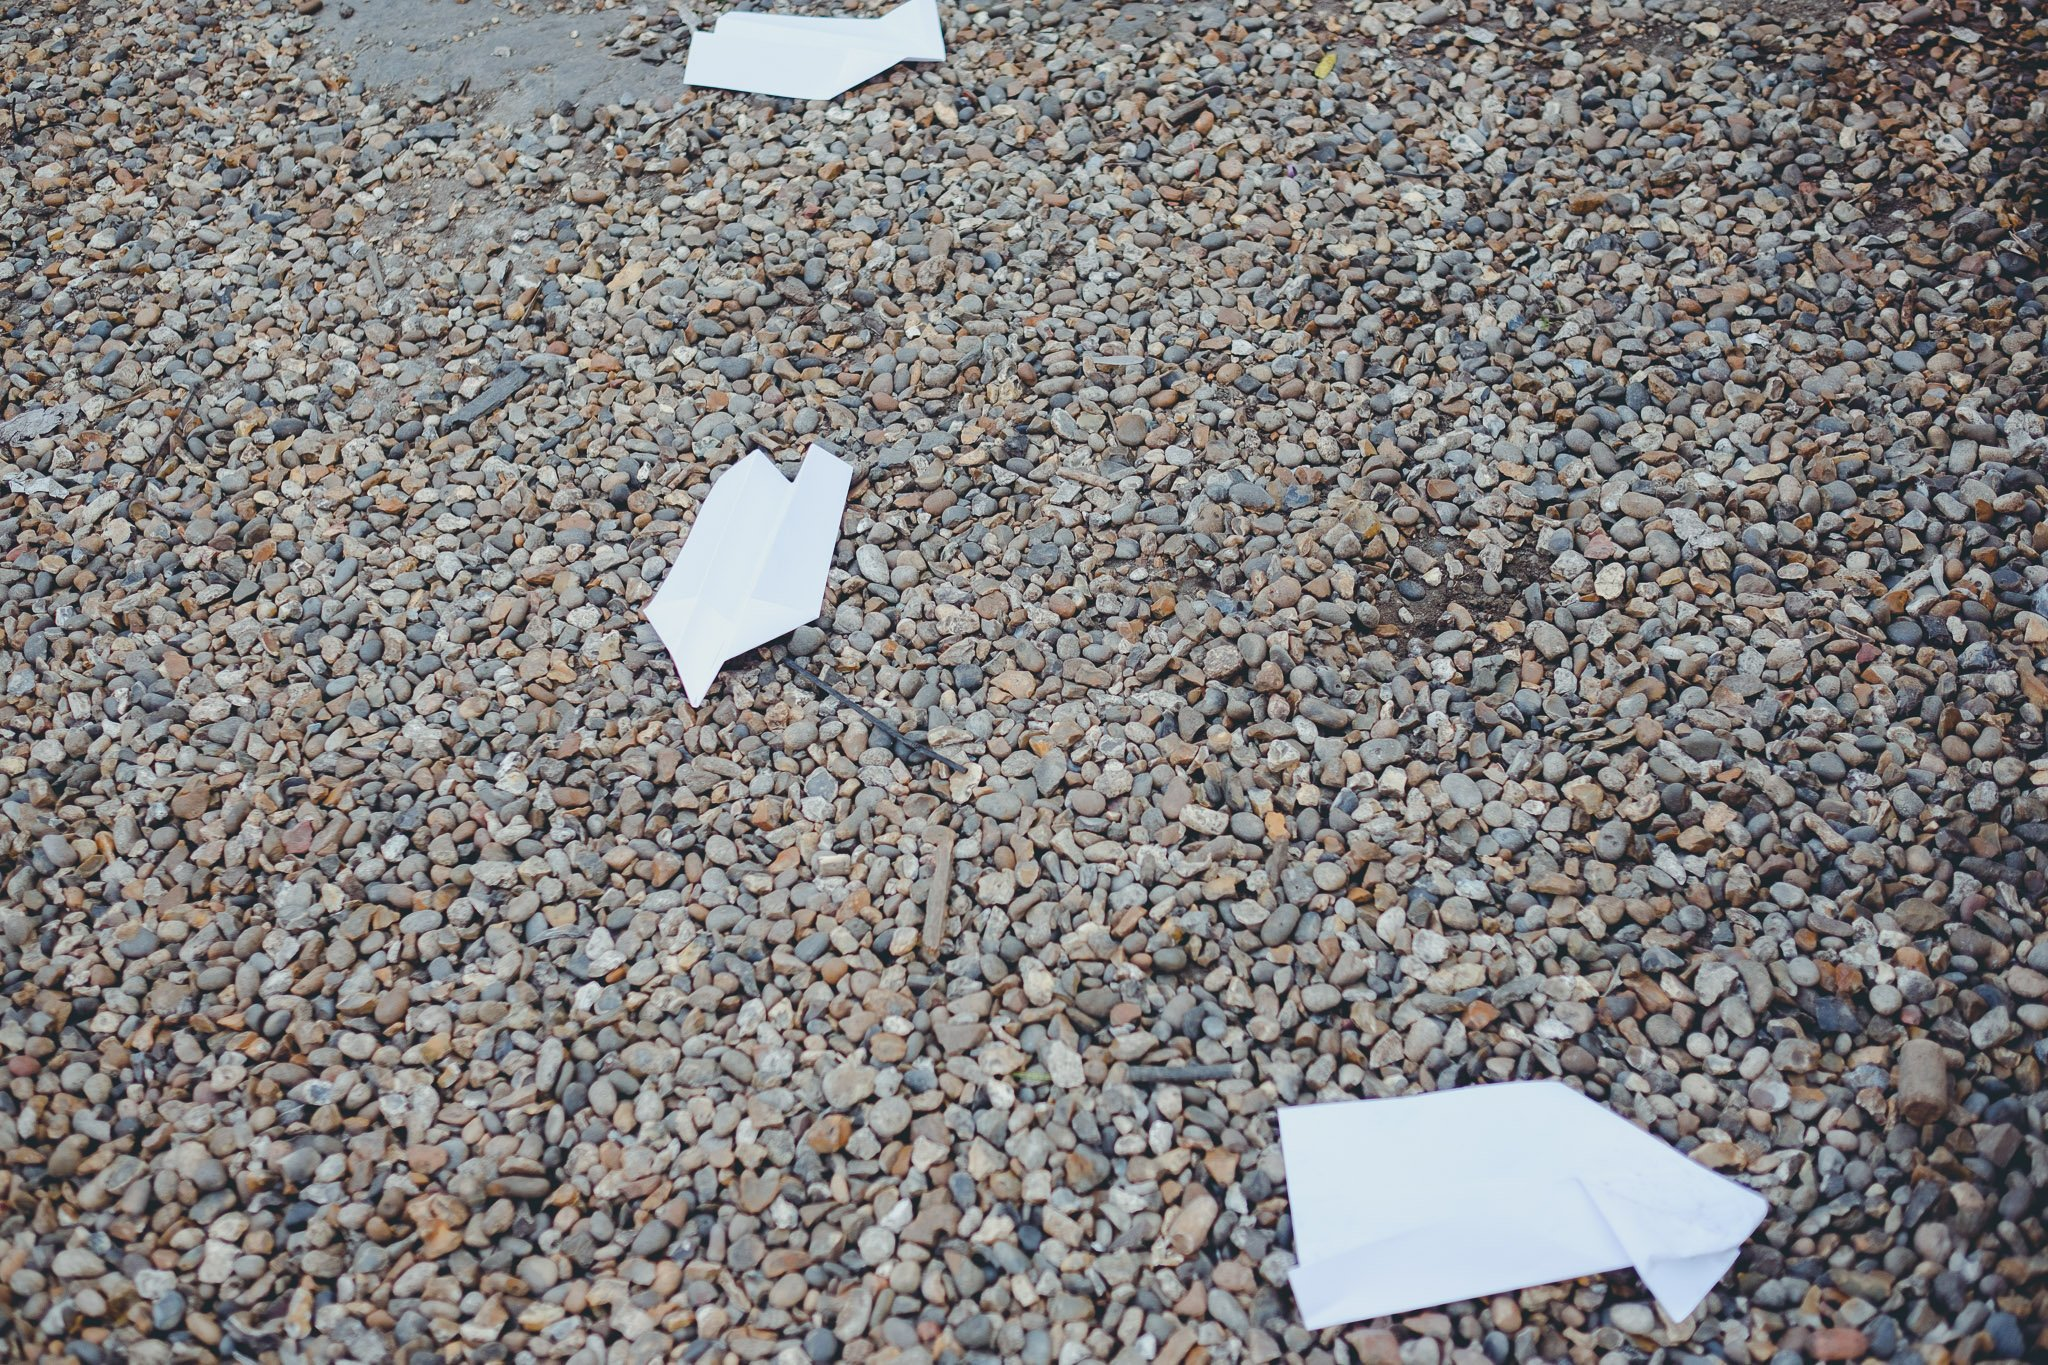 Discarded paper planes on pebbles